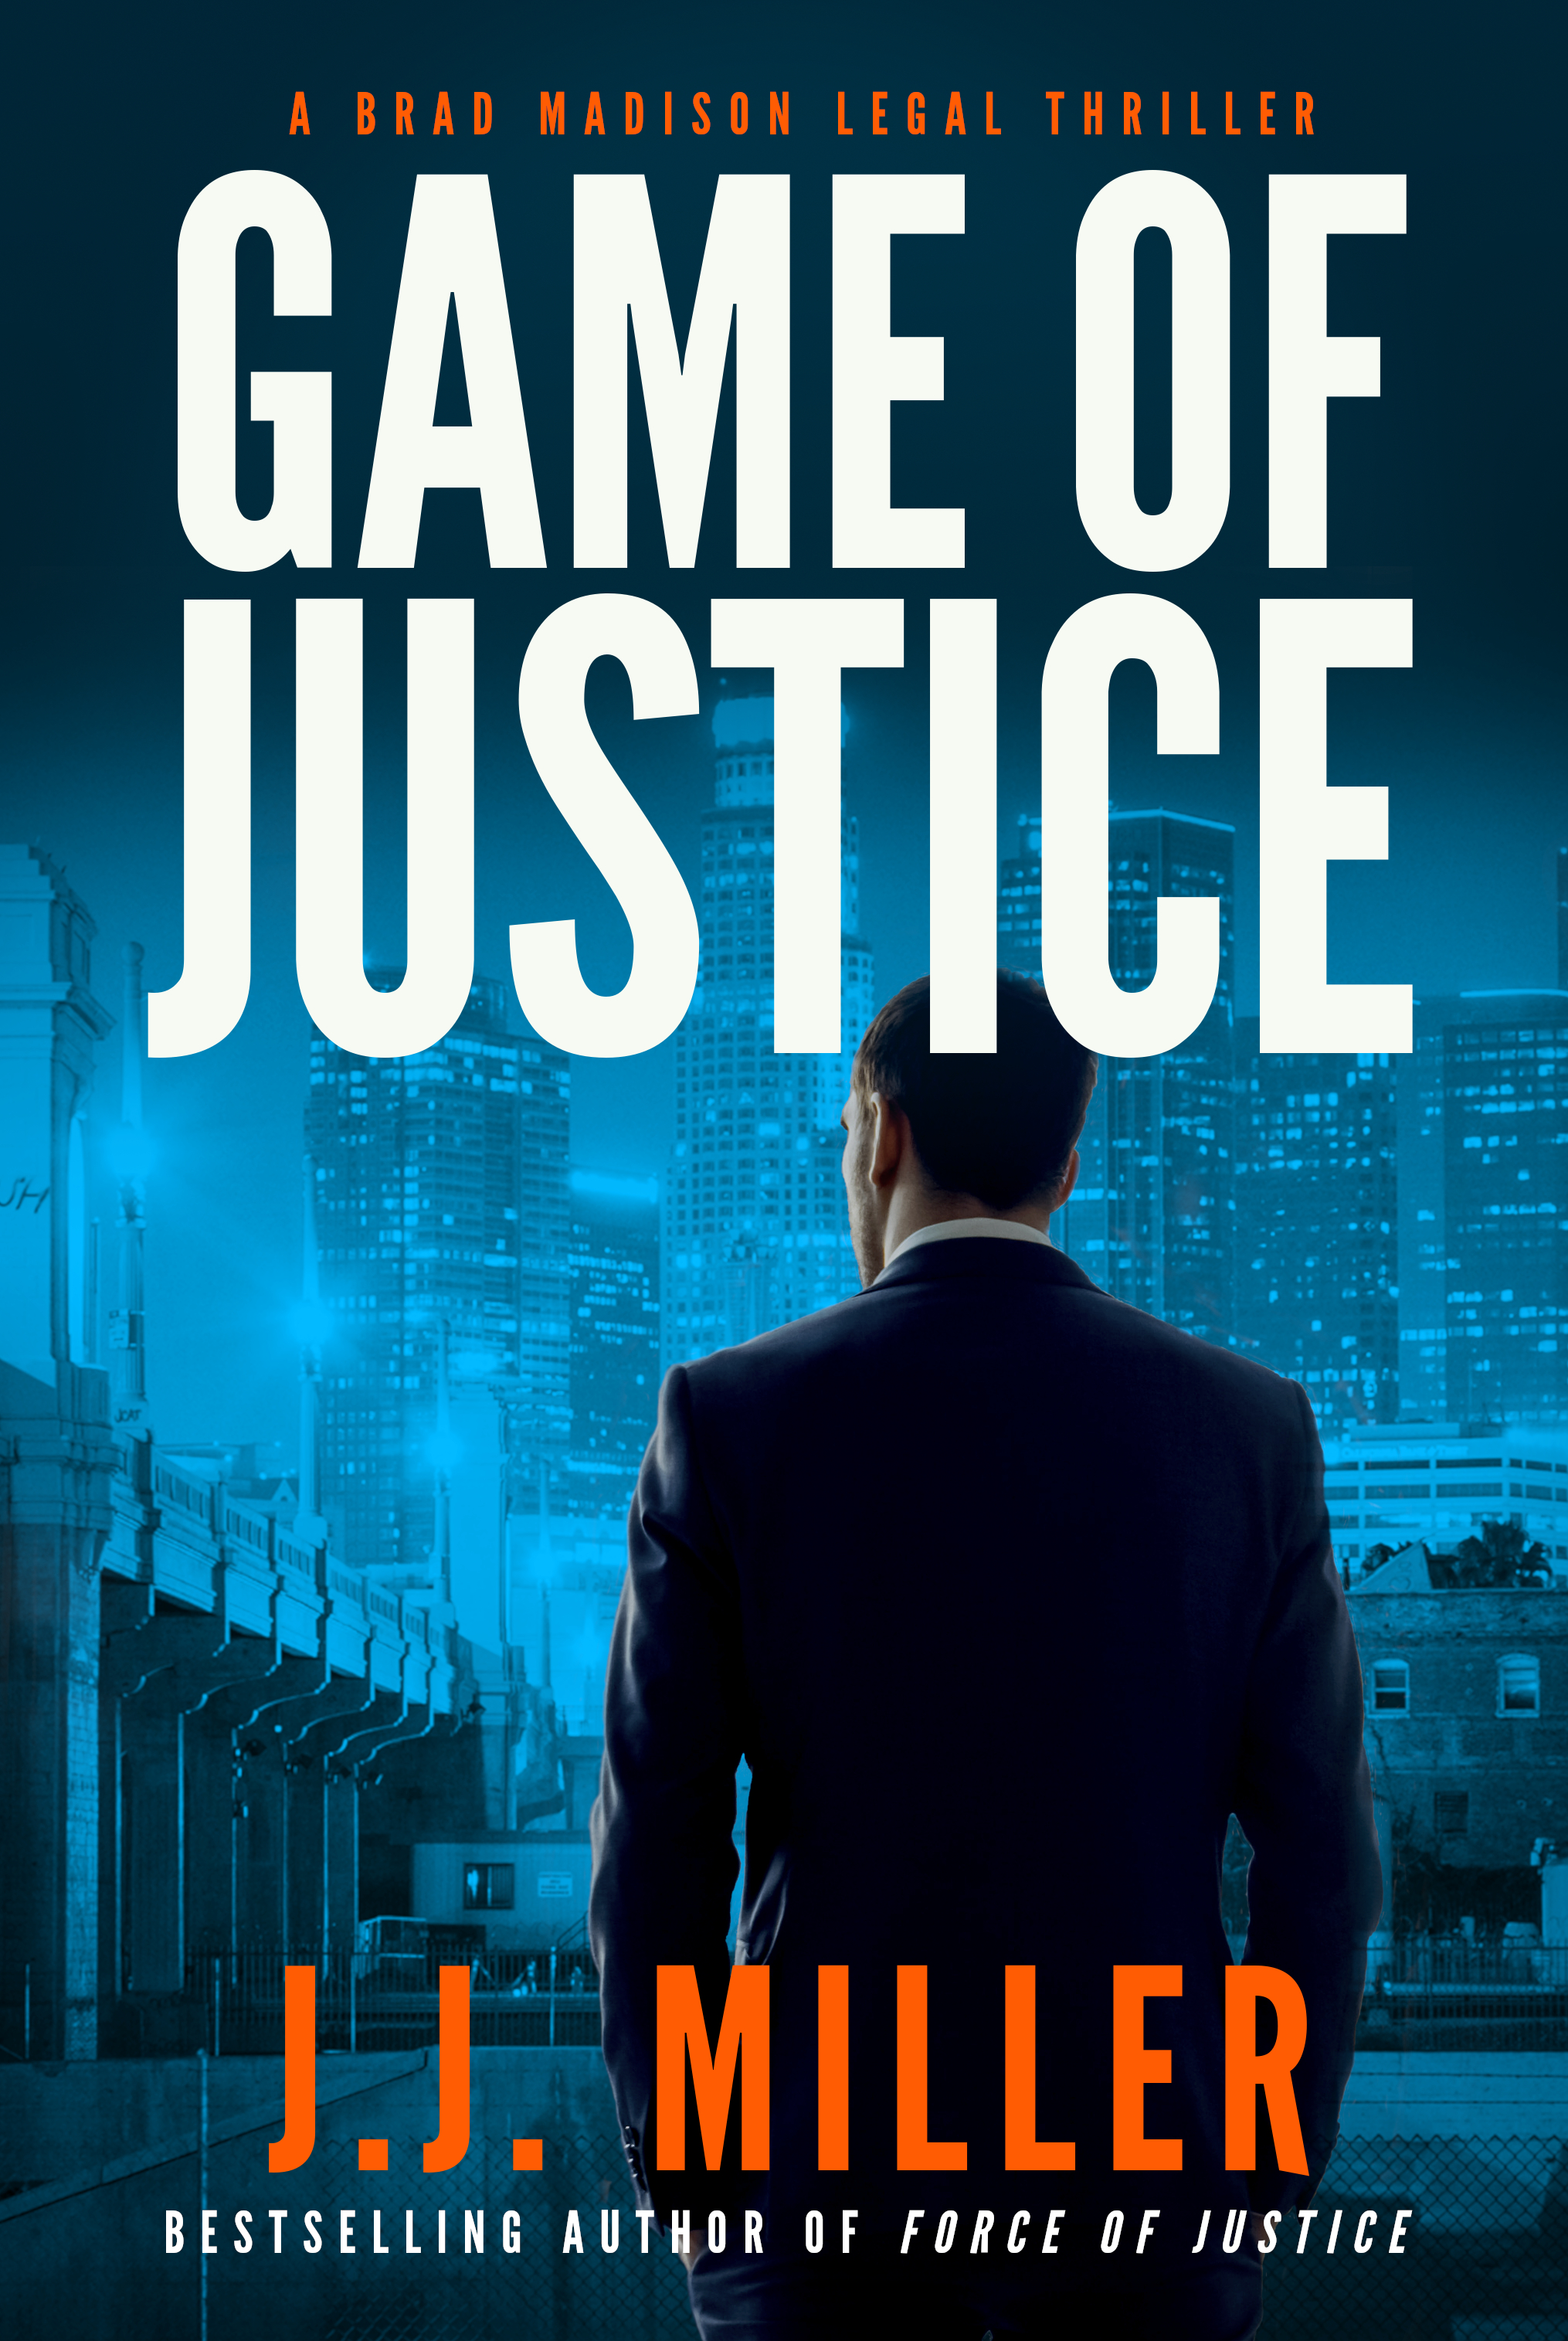 Game of Justice (Brad Madison Legal Thriller #3)